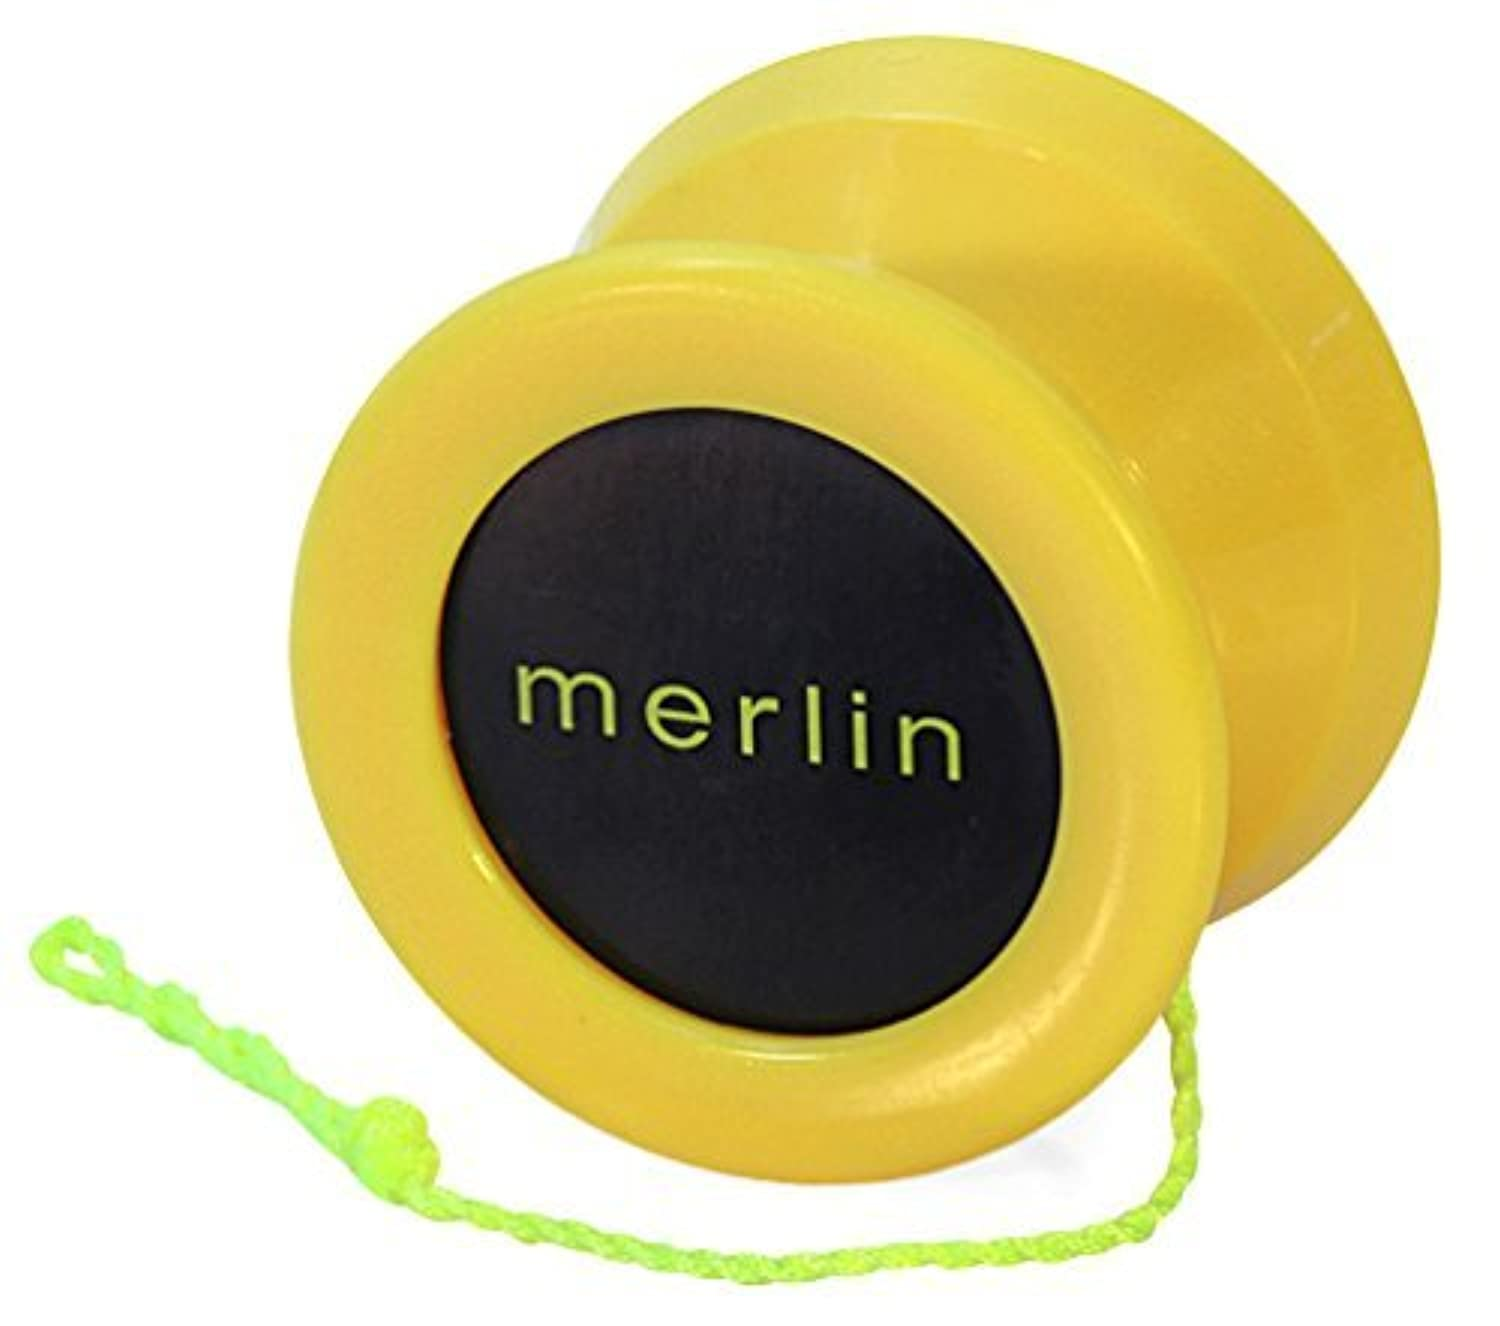 Yoyo King Yellow Merlin Professional Ball Bearing Axle Yoyo for Pro Tricks 【You&Me】 [並行輸入品]